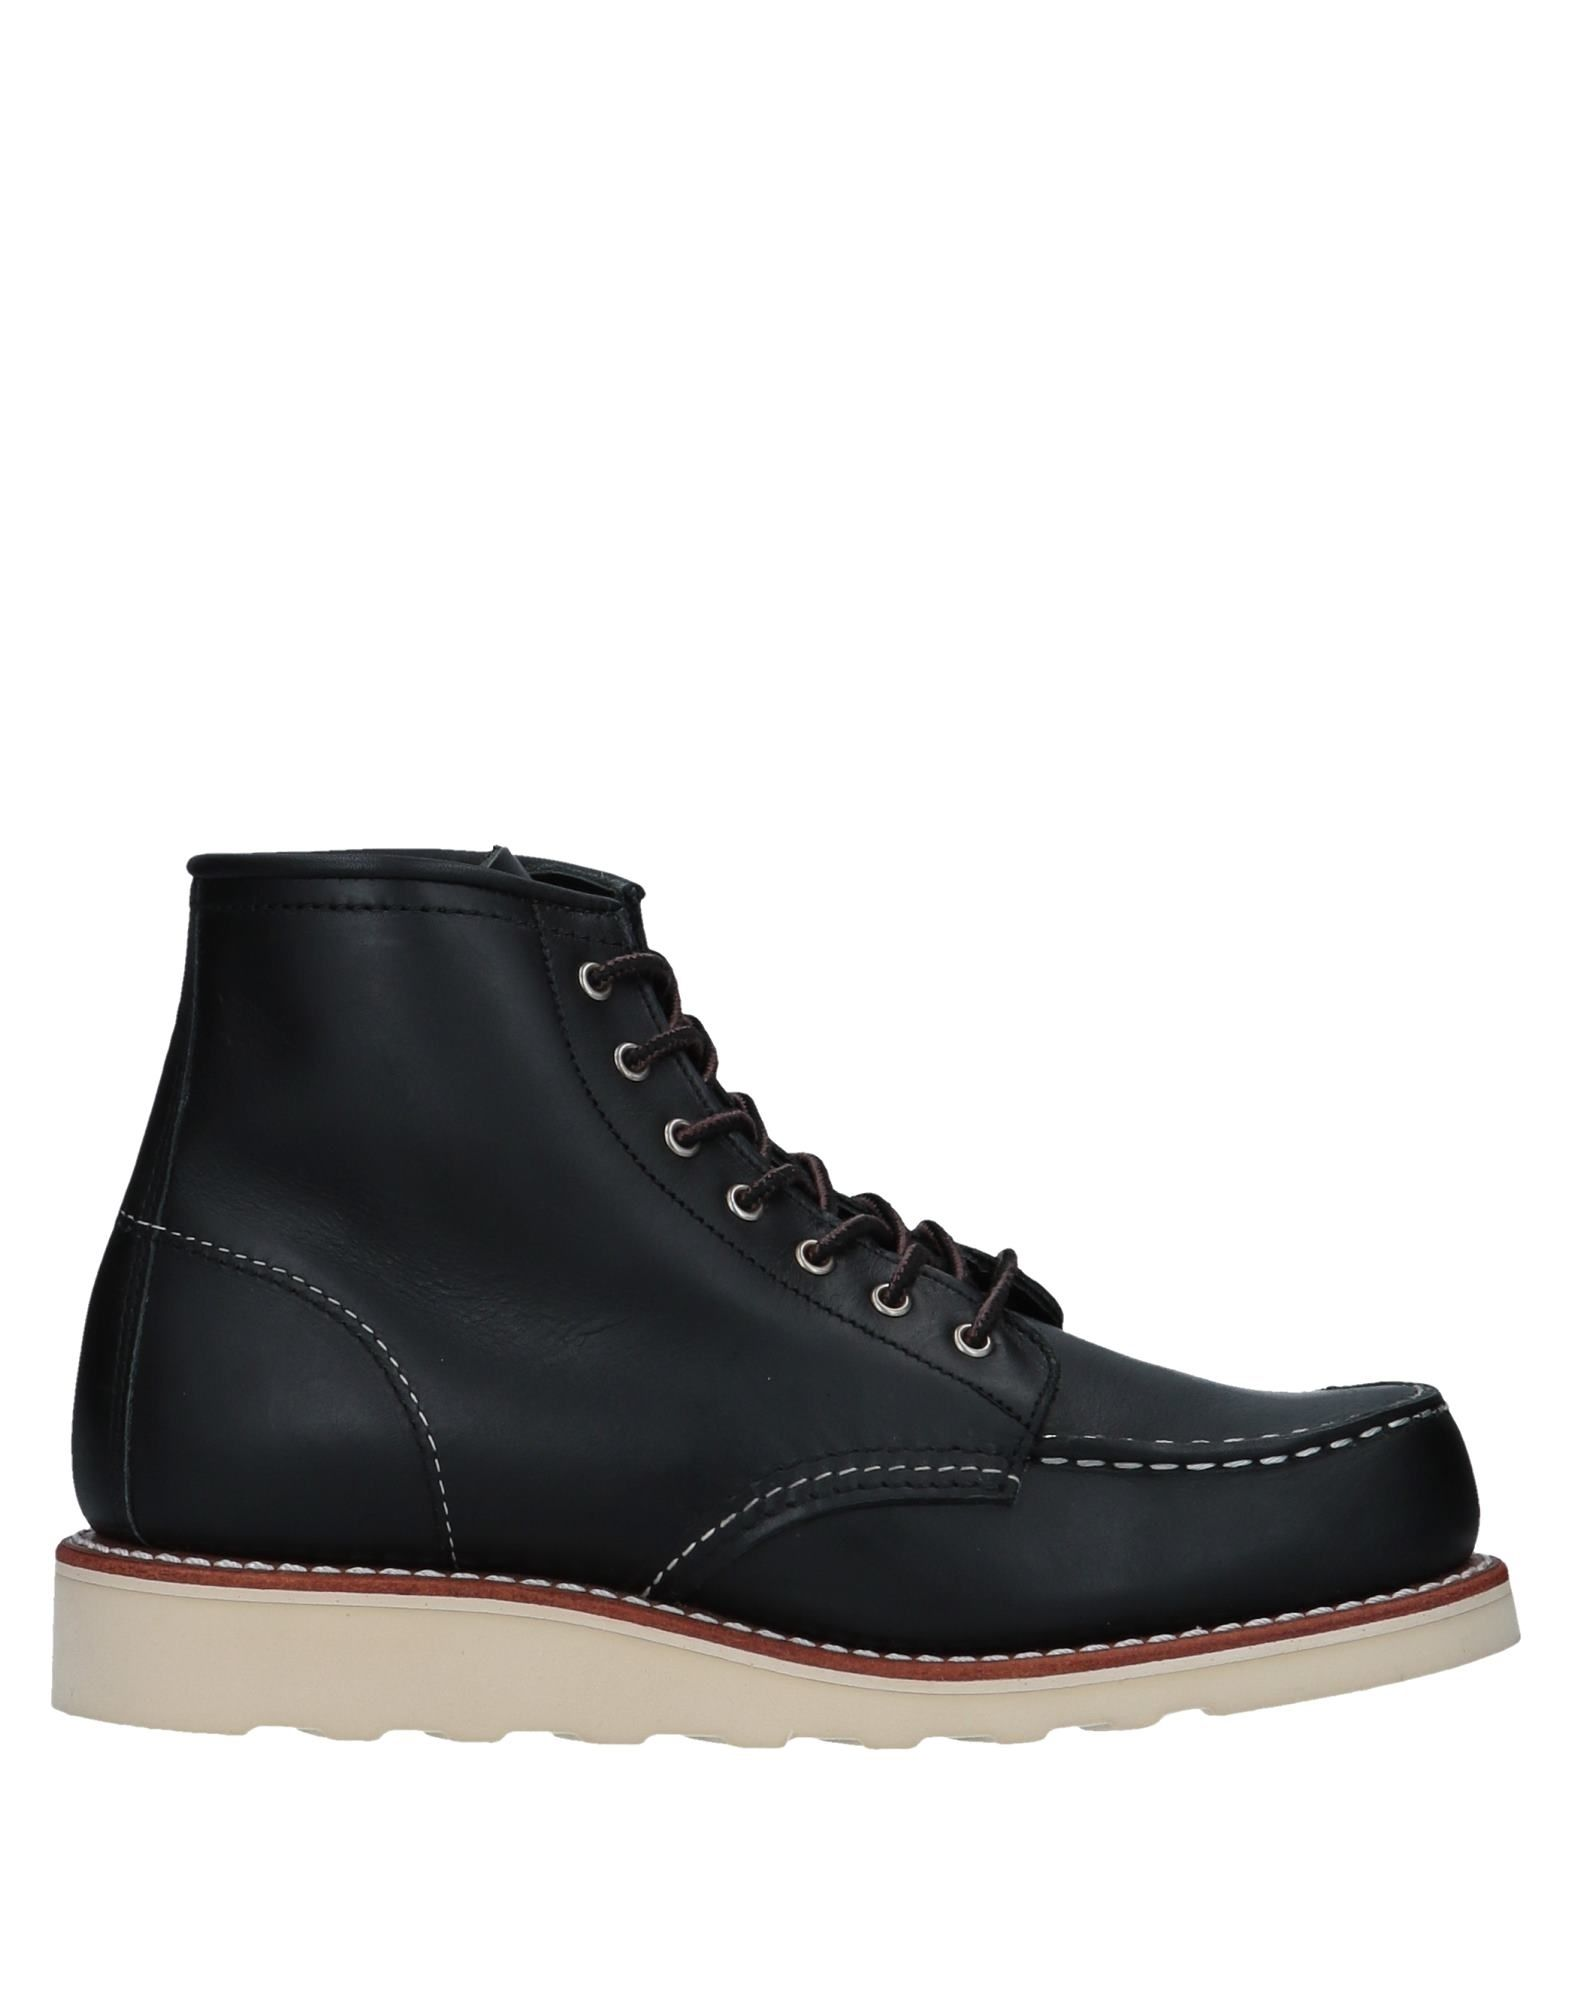 Stivaletti Red Wing Shoes Donna - 11520987BT